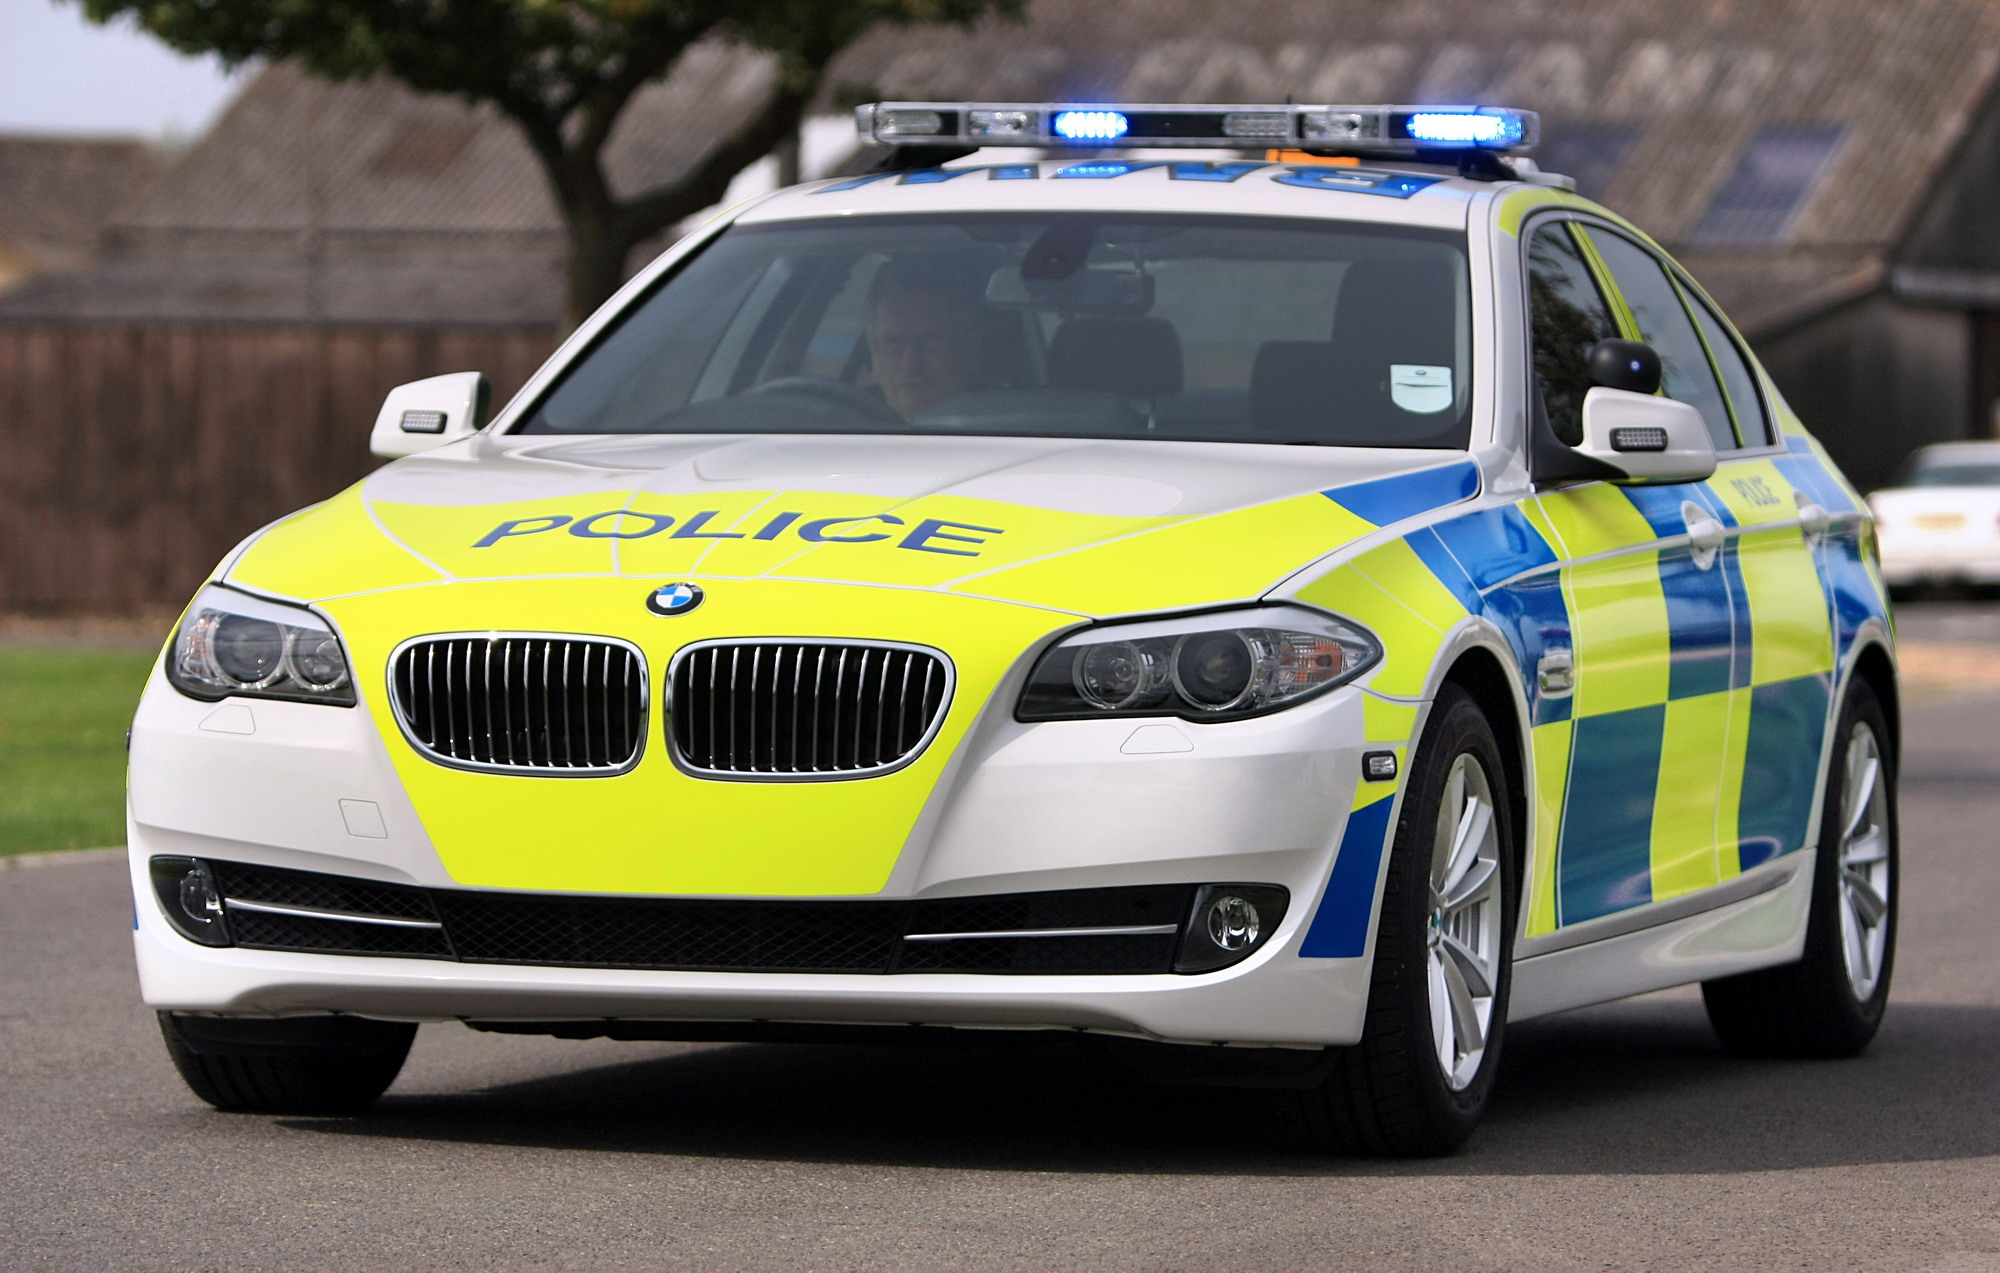 bmw giving uk police forces new cars | top speed